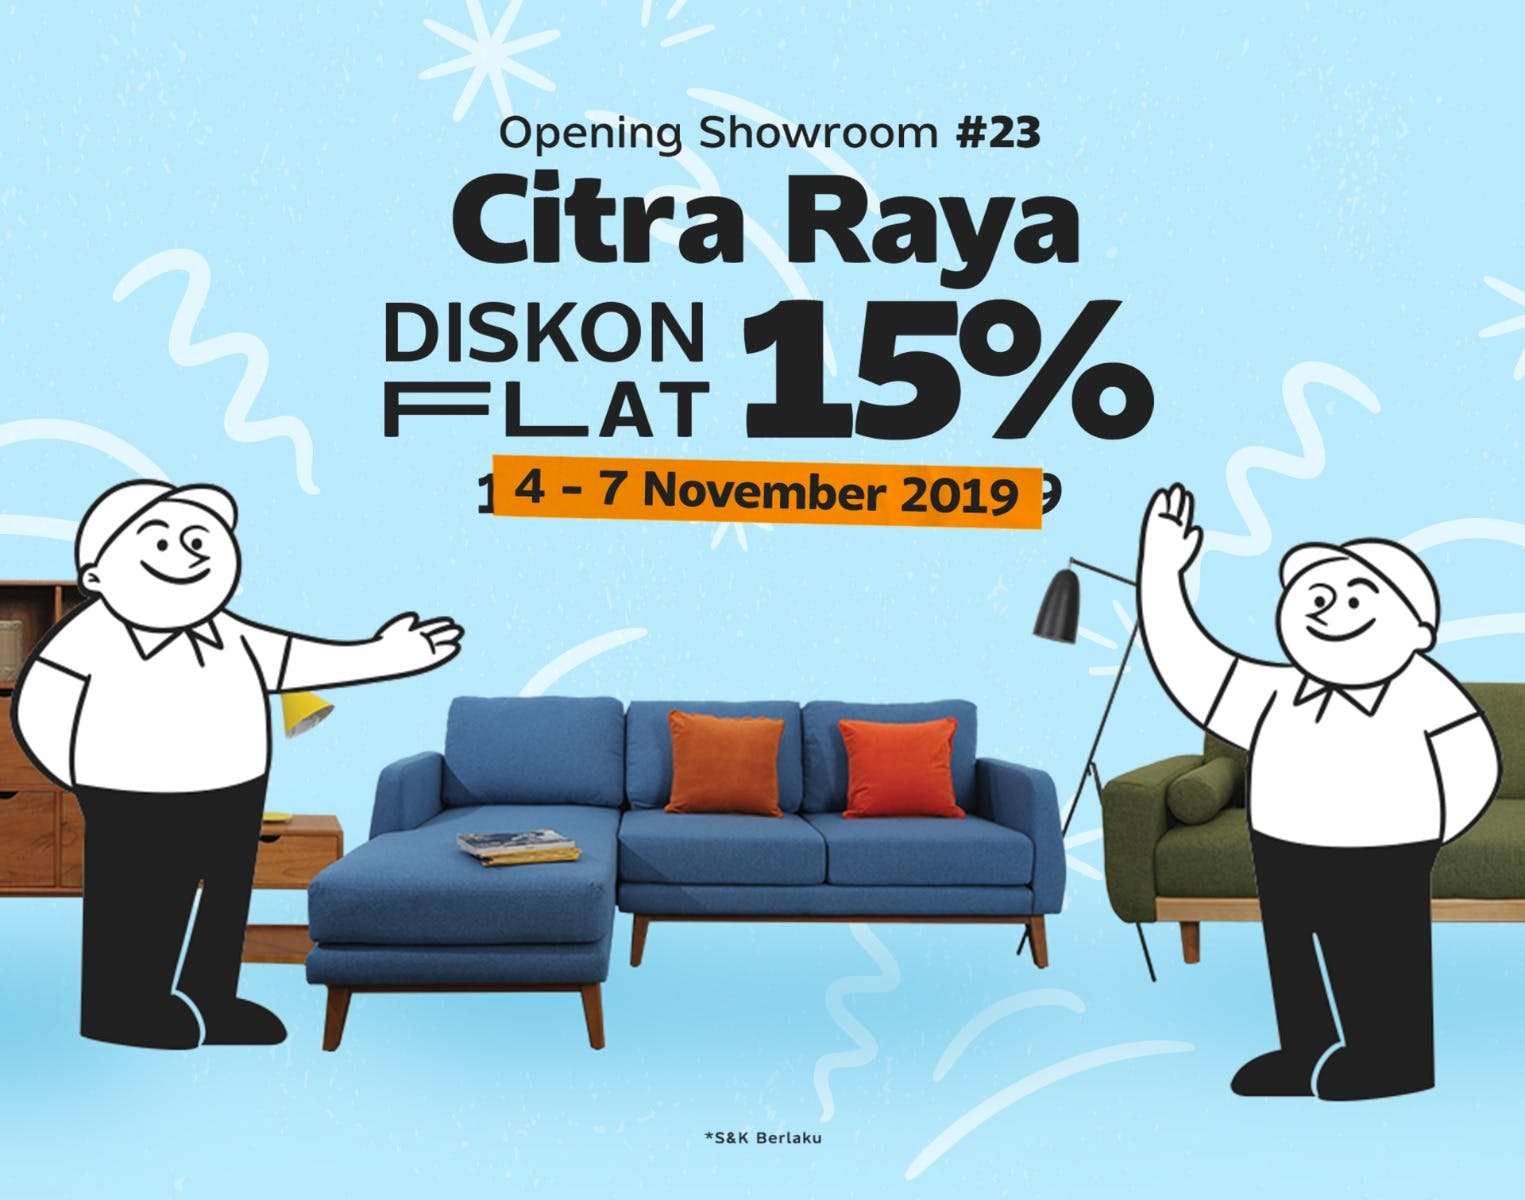 Citra Raya Showroom Launching